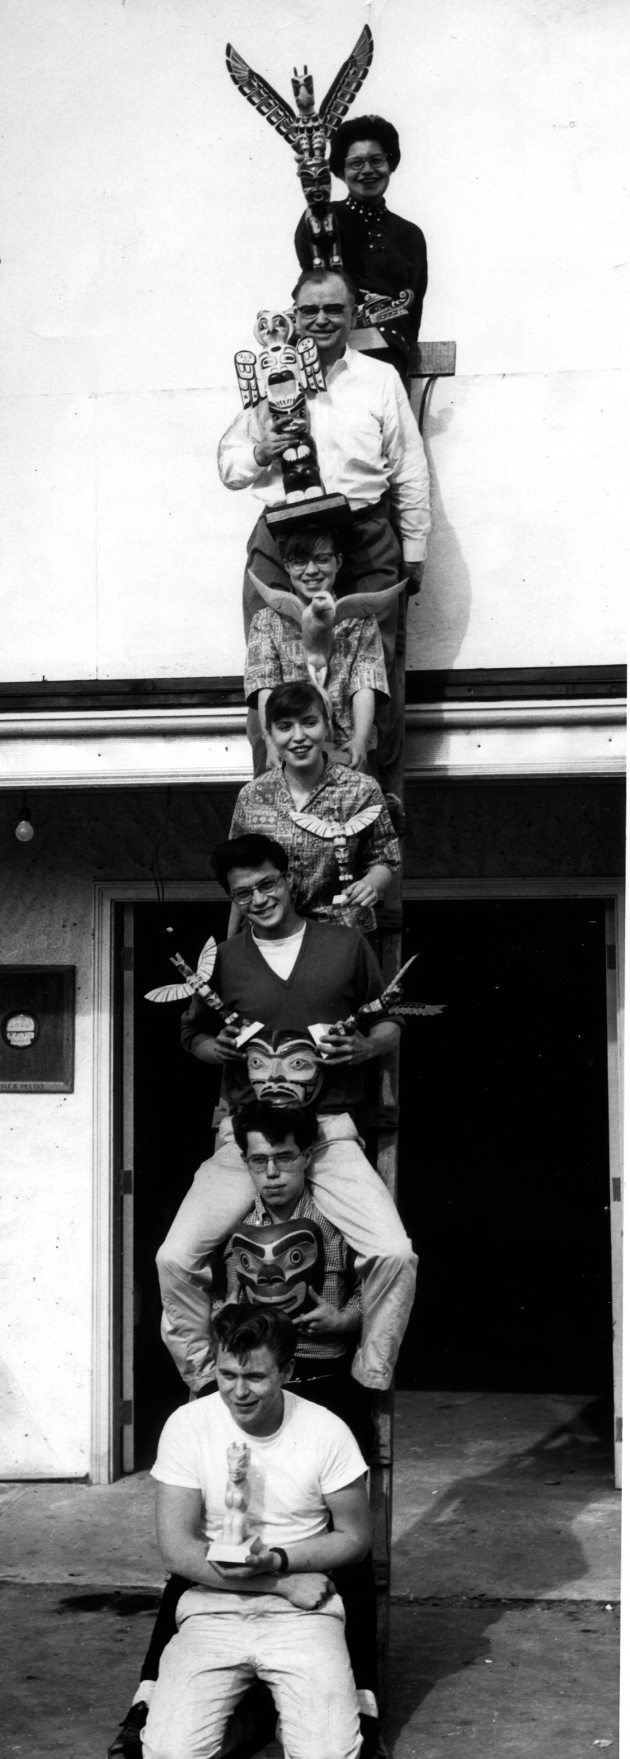 Neel Family As Totem Pole, 1960